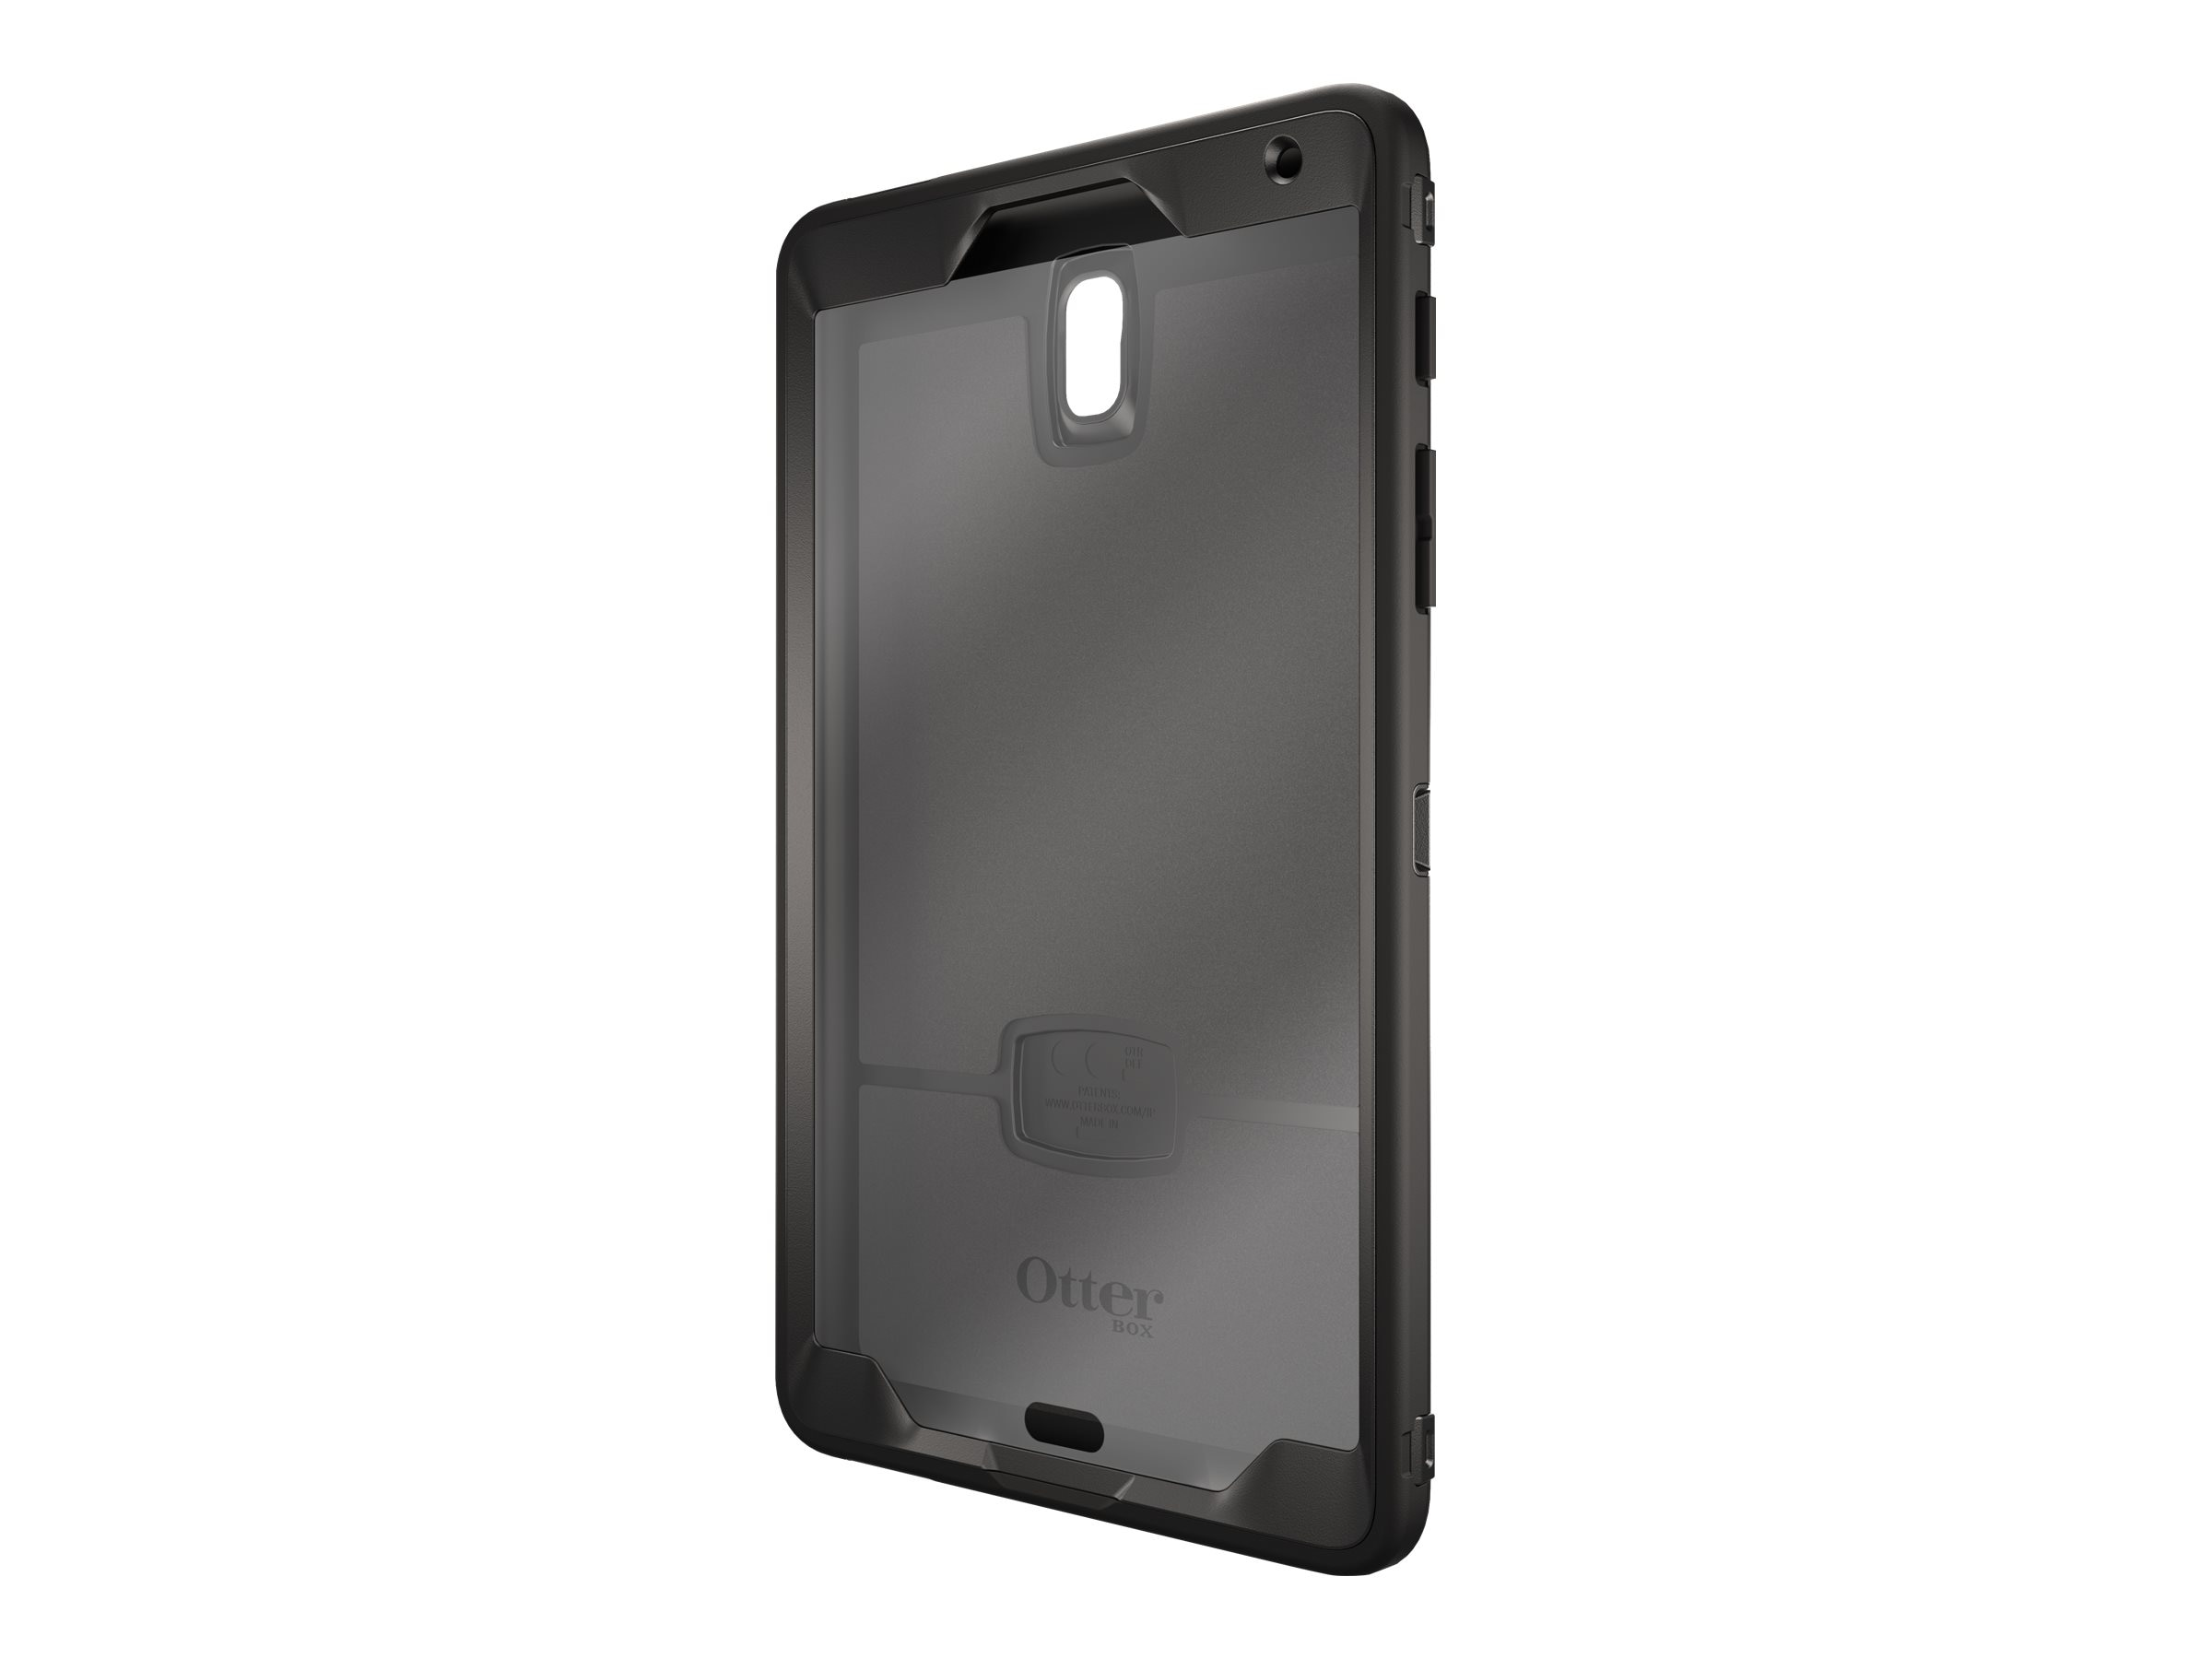 OtterBox Defender Series Case for Samsung Galaxy Tab S 8.4, Black